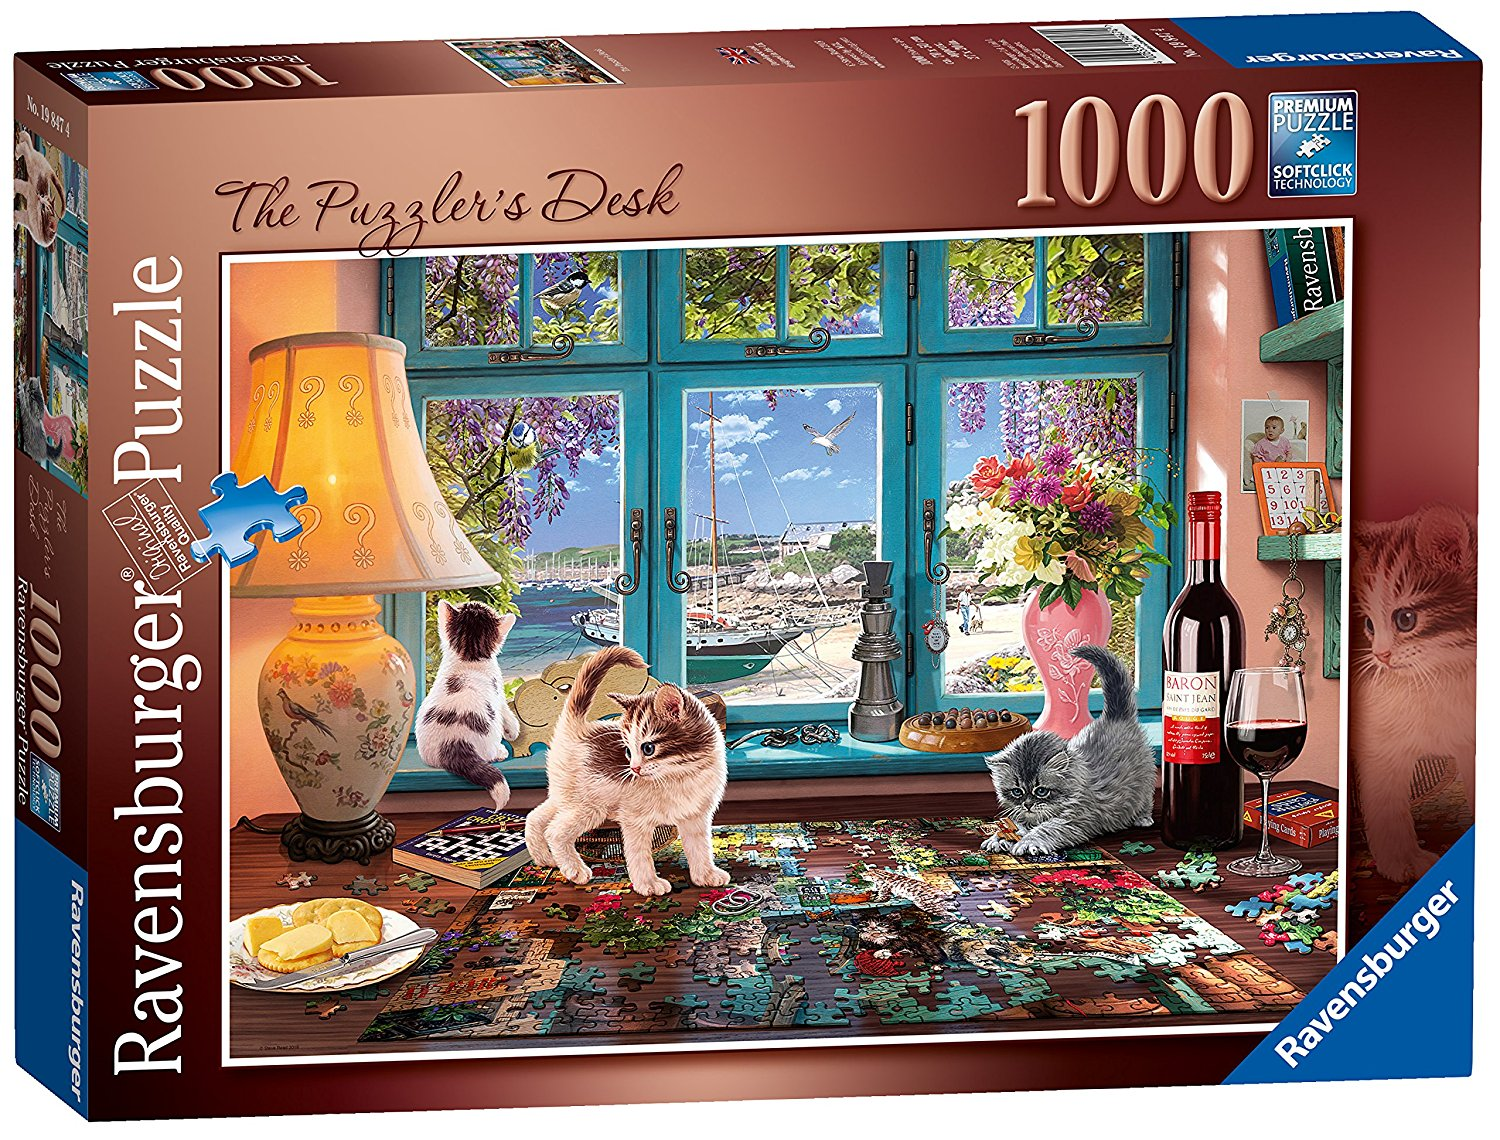 The Puzzlers Desk Jigsaw, 1000pc